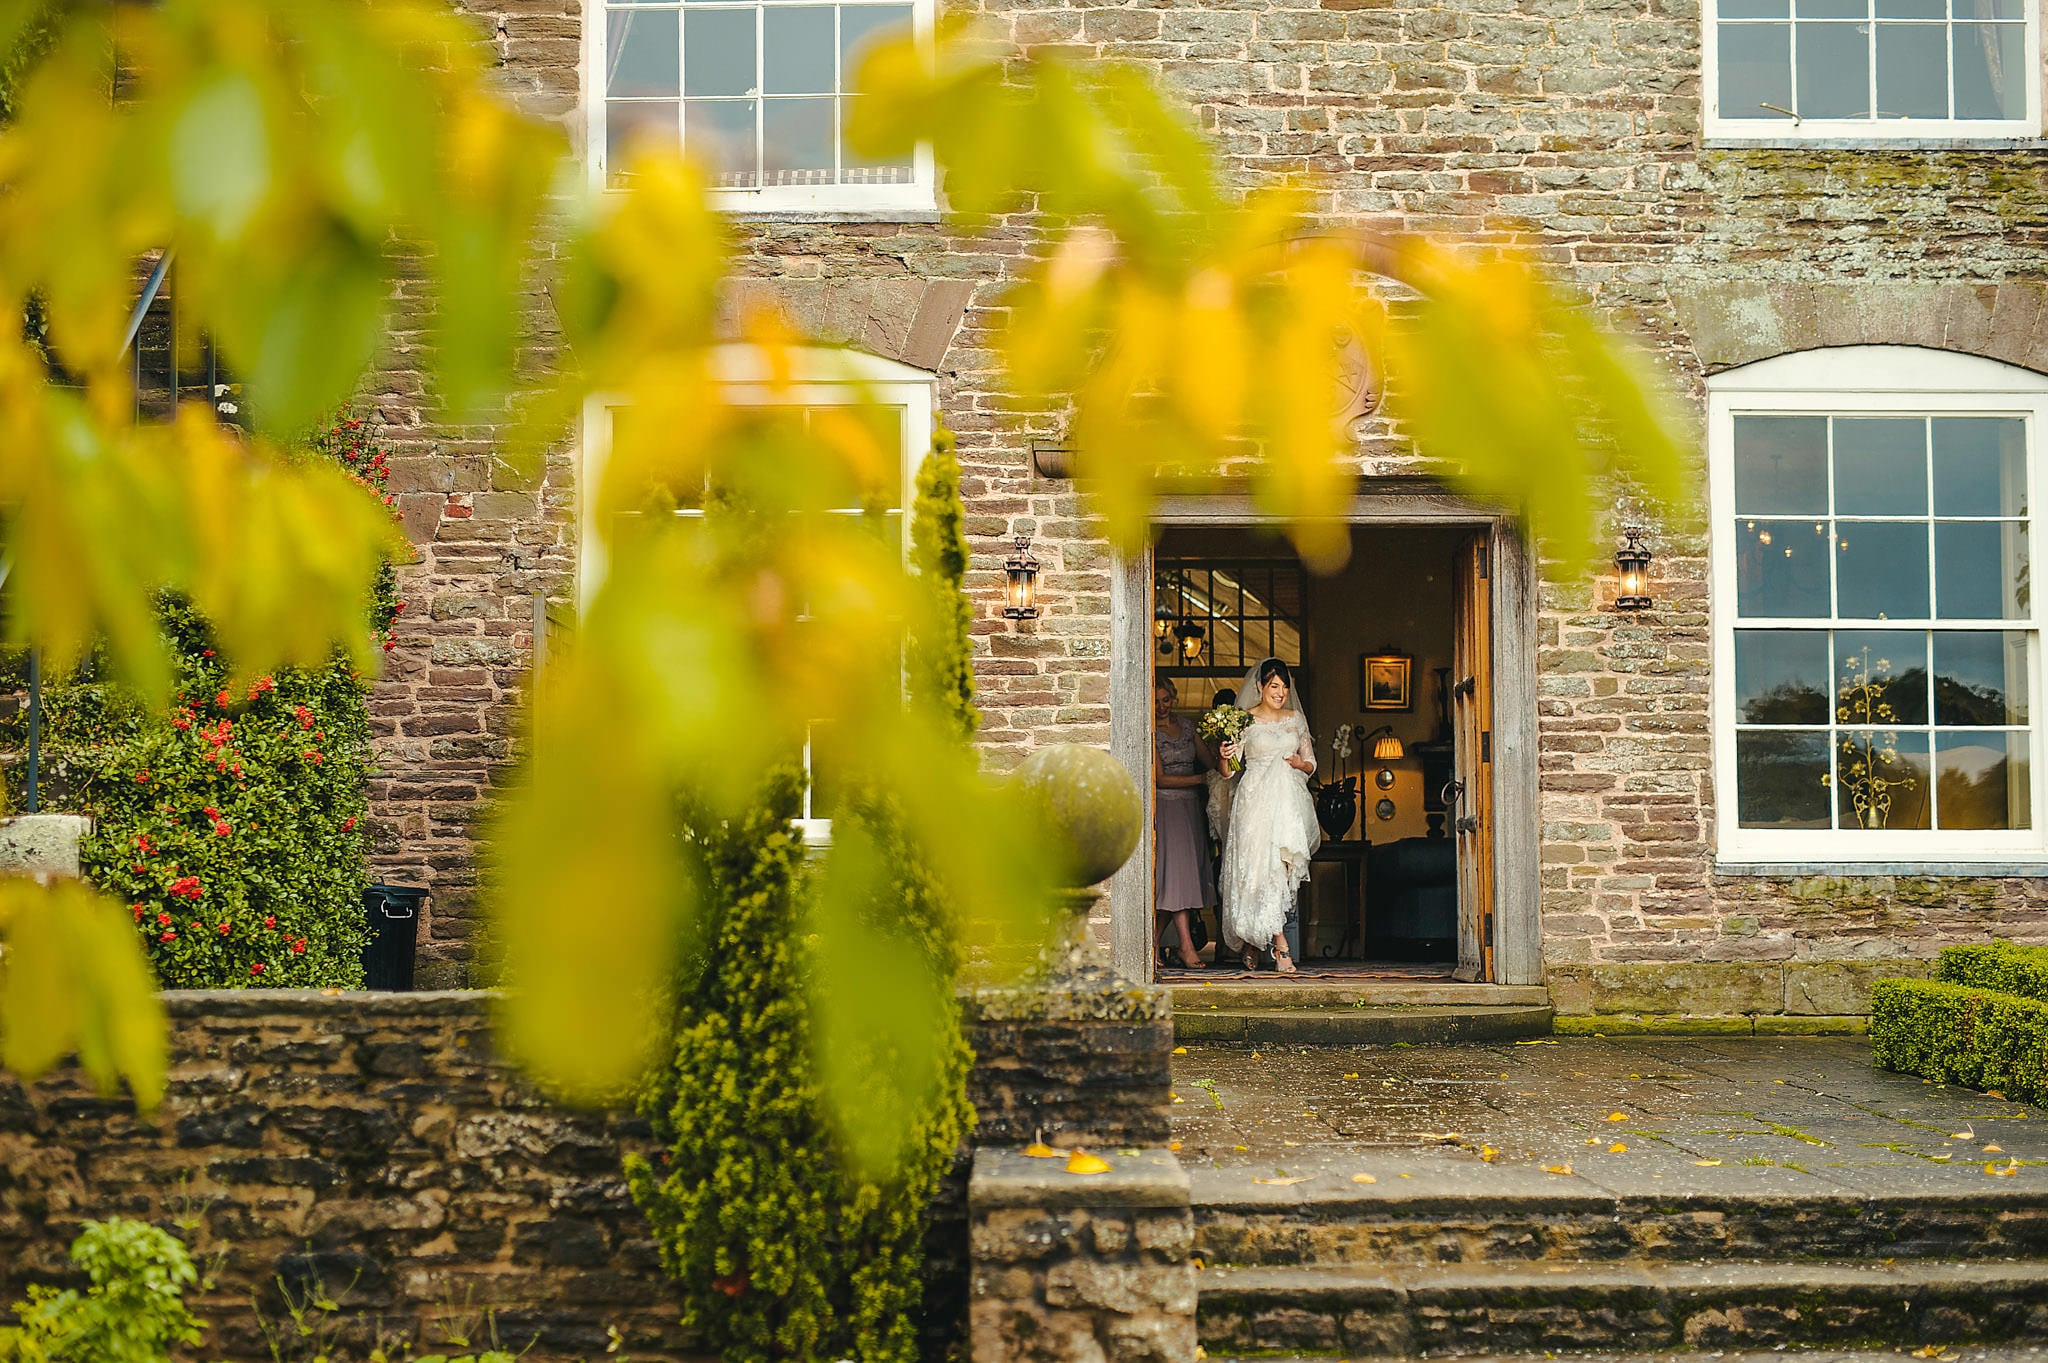 dewsall court wedding photography herefordshire 81 - Dewsall Court wedding photography Herefordshire | Laura + Alex